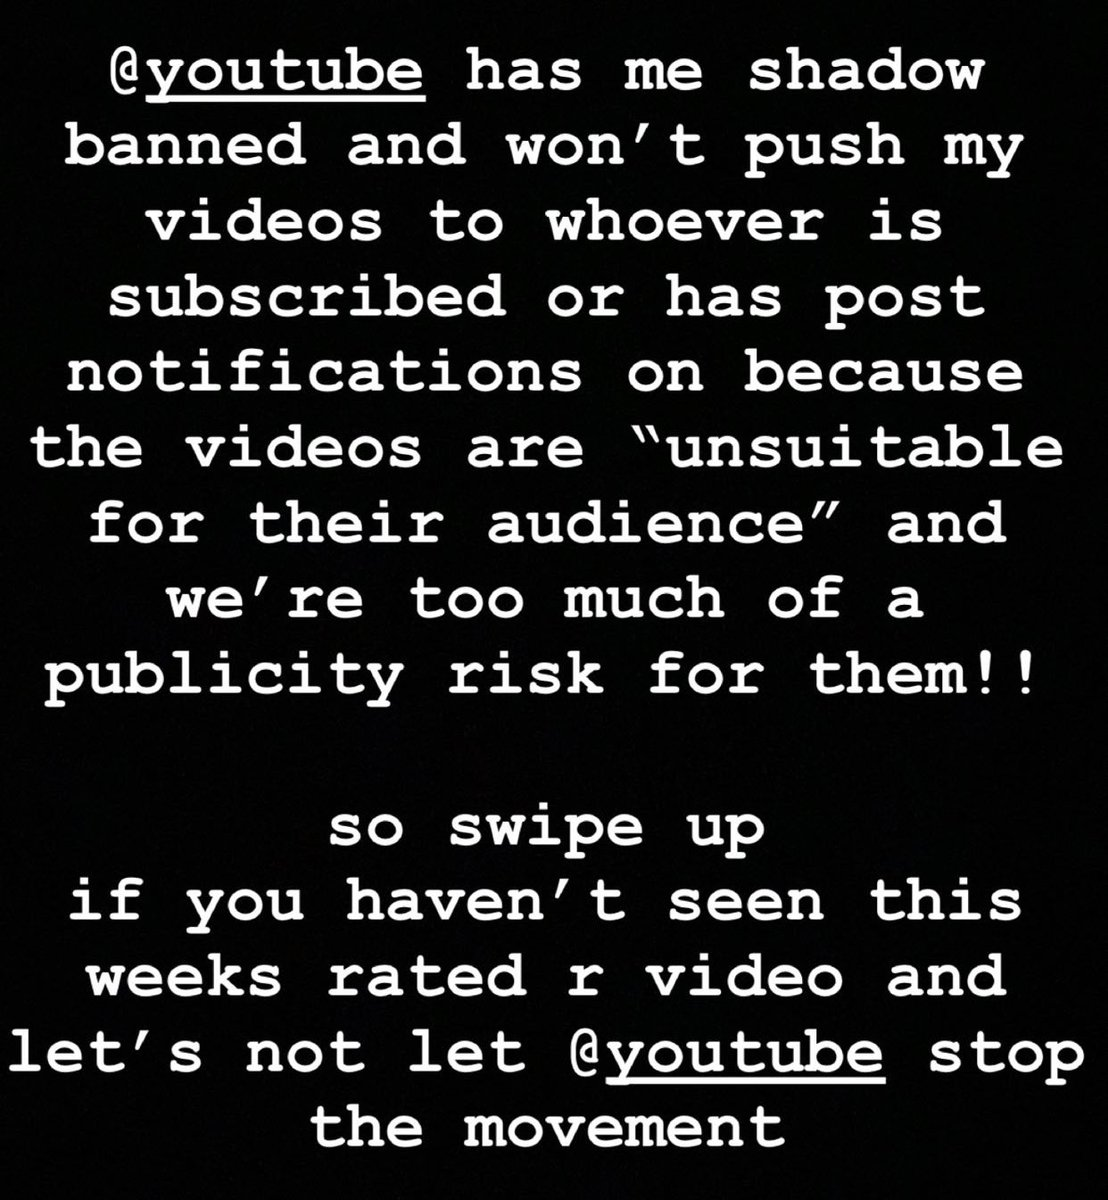 """let's not let @youtube win here  they do this to creators whenever they please  whenever they see a risk  whenever they want to protect themselves   i'm one of youtube's """"riskiest"""" creators and they're punishing me for it   new video is out👇🏼  https://t.co/Lfoy8RUvB8 https://t.co/uL3iXTlP1q"""